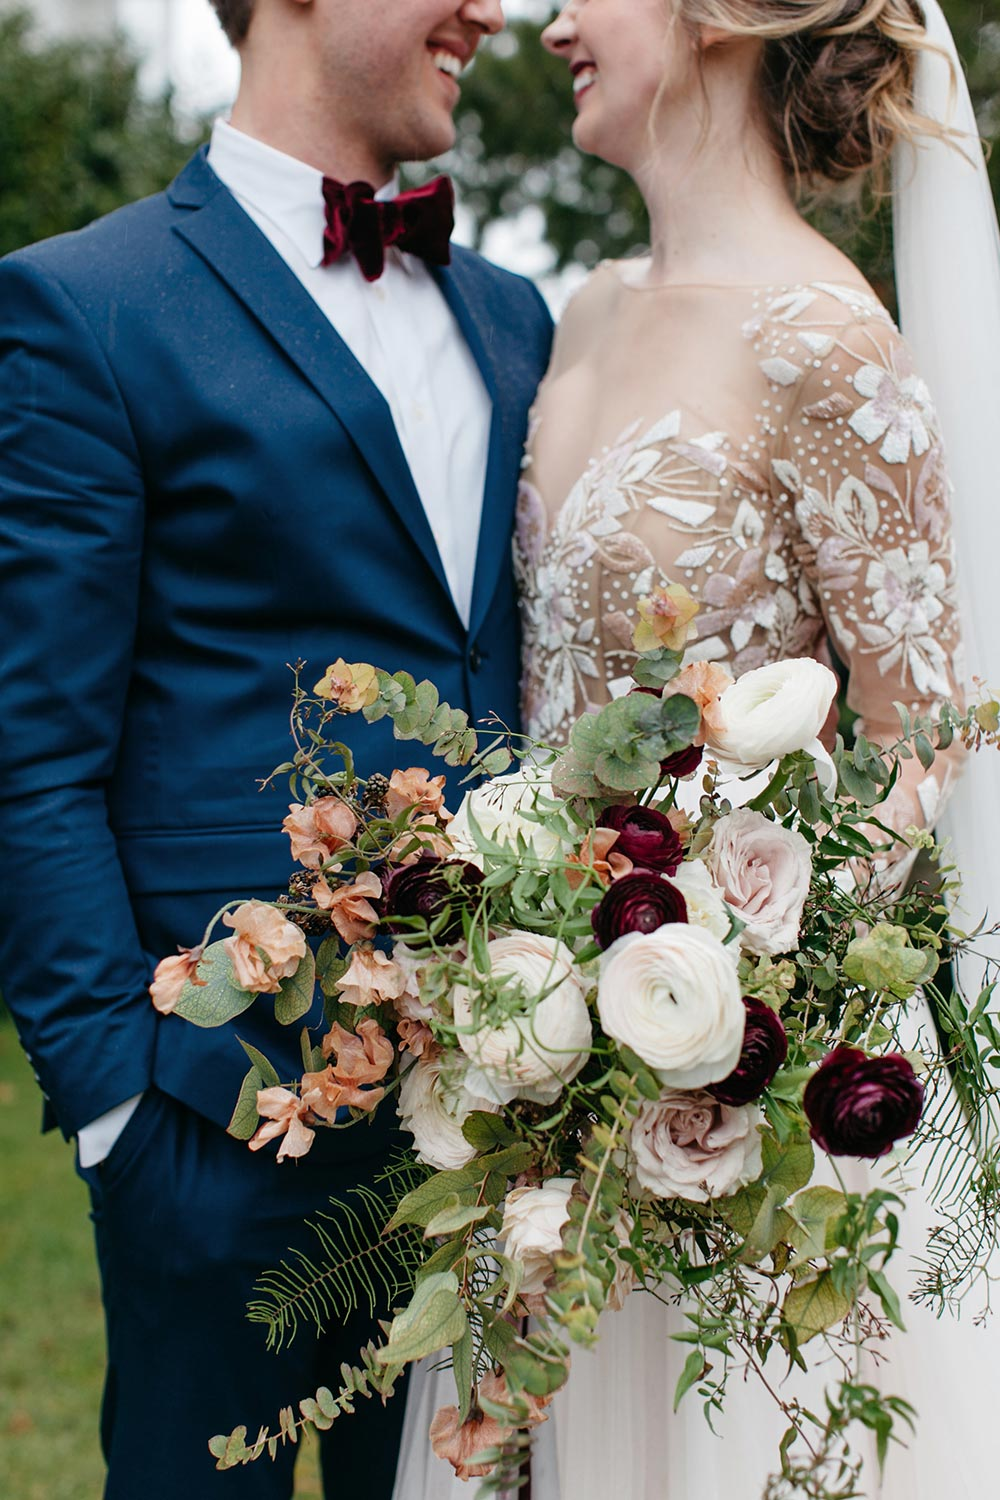 Hayley paige long sleeve wedding dress with earth toned bridal bouquet